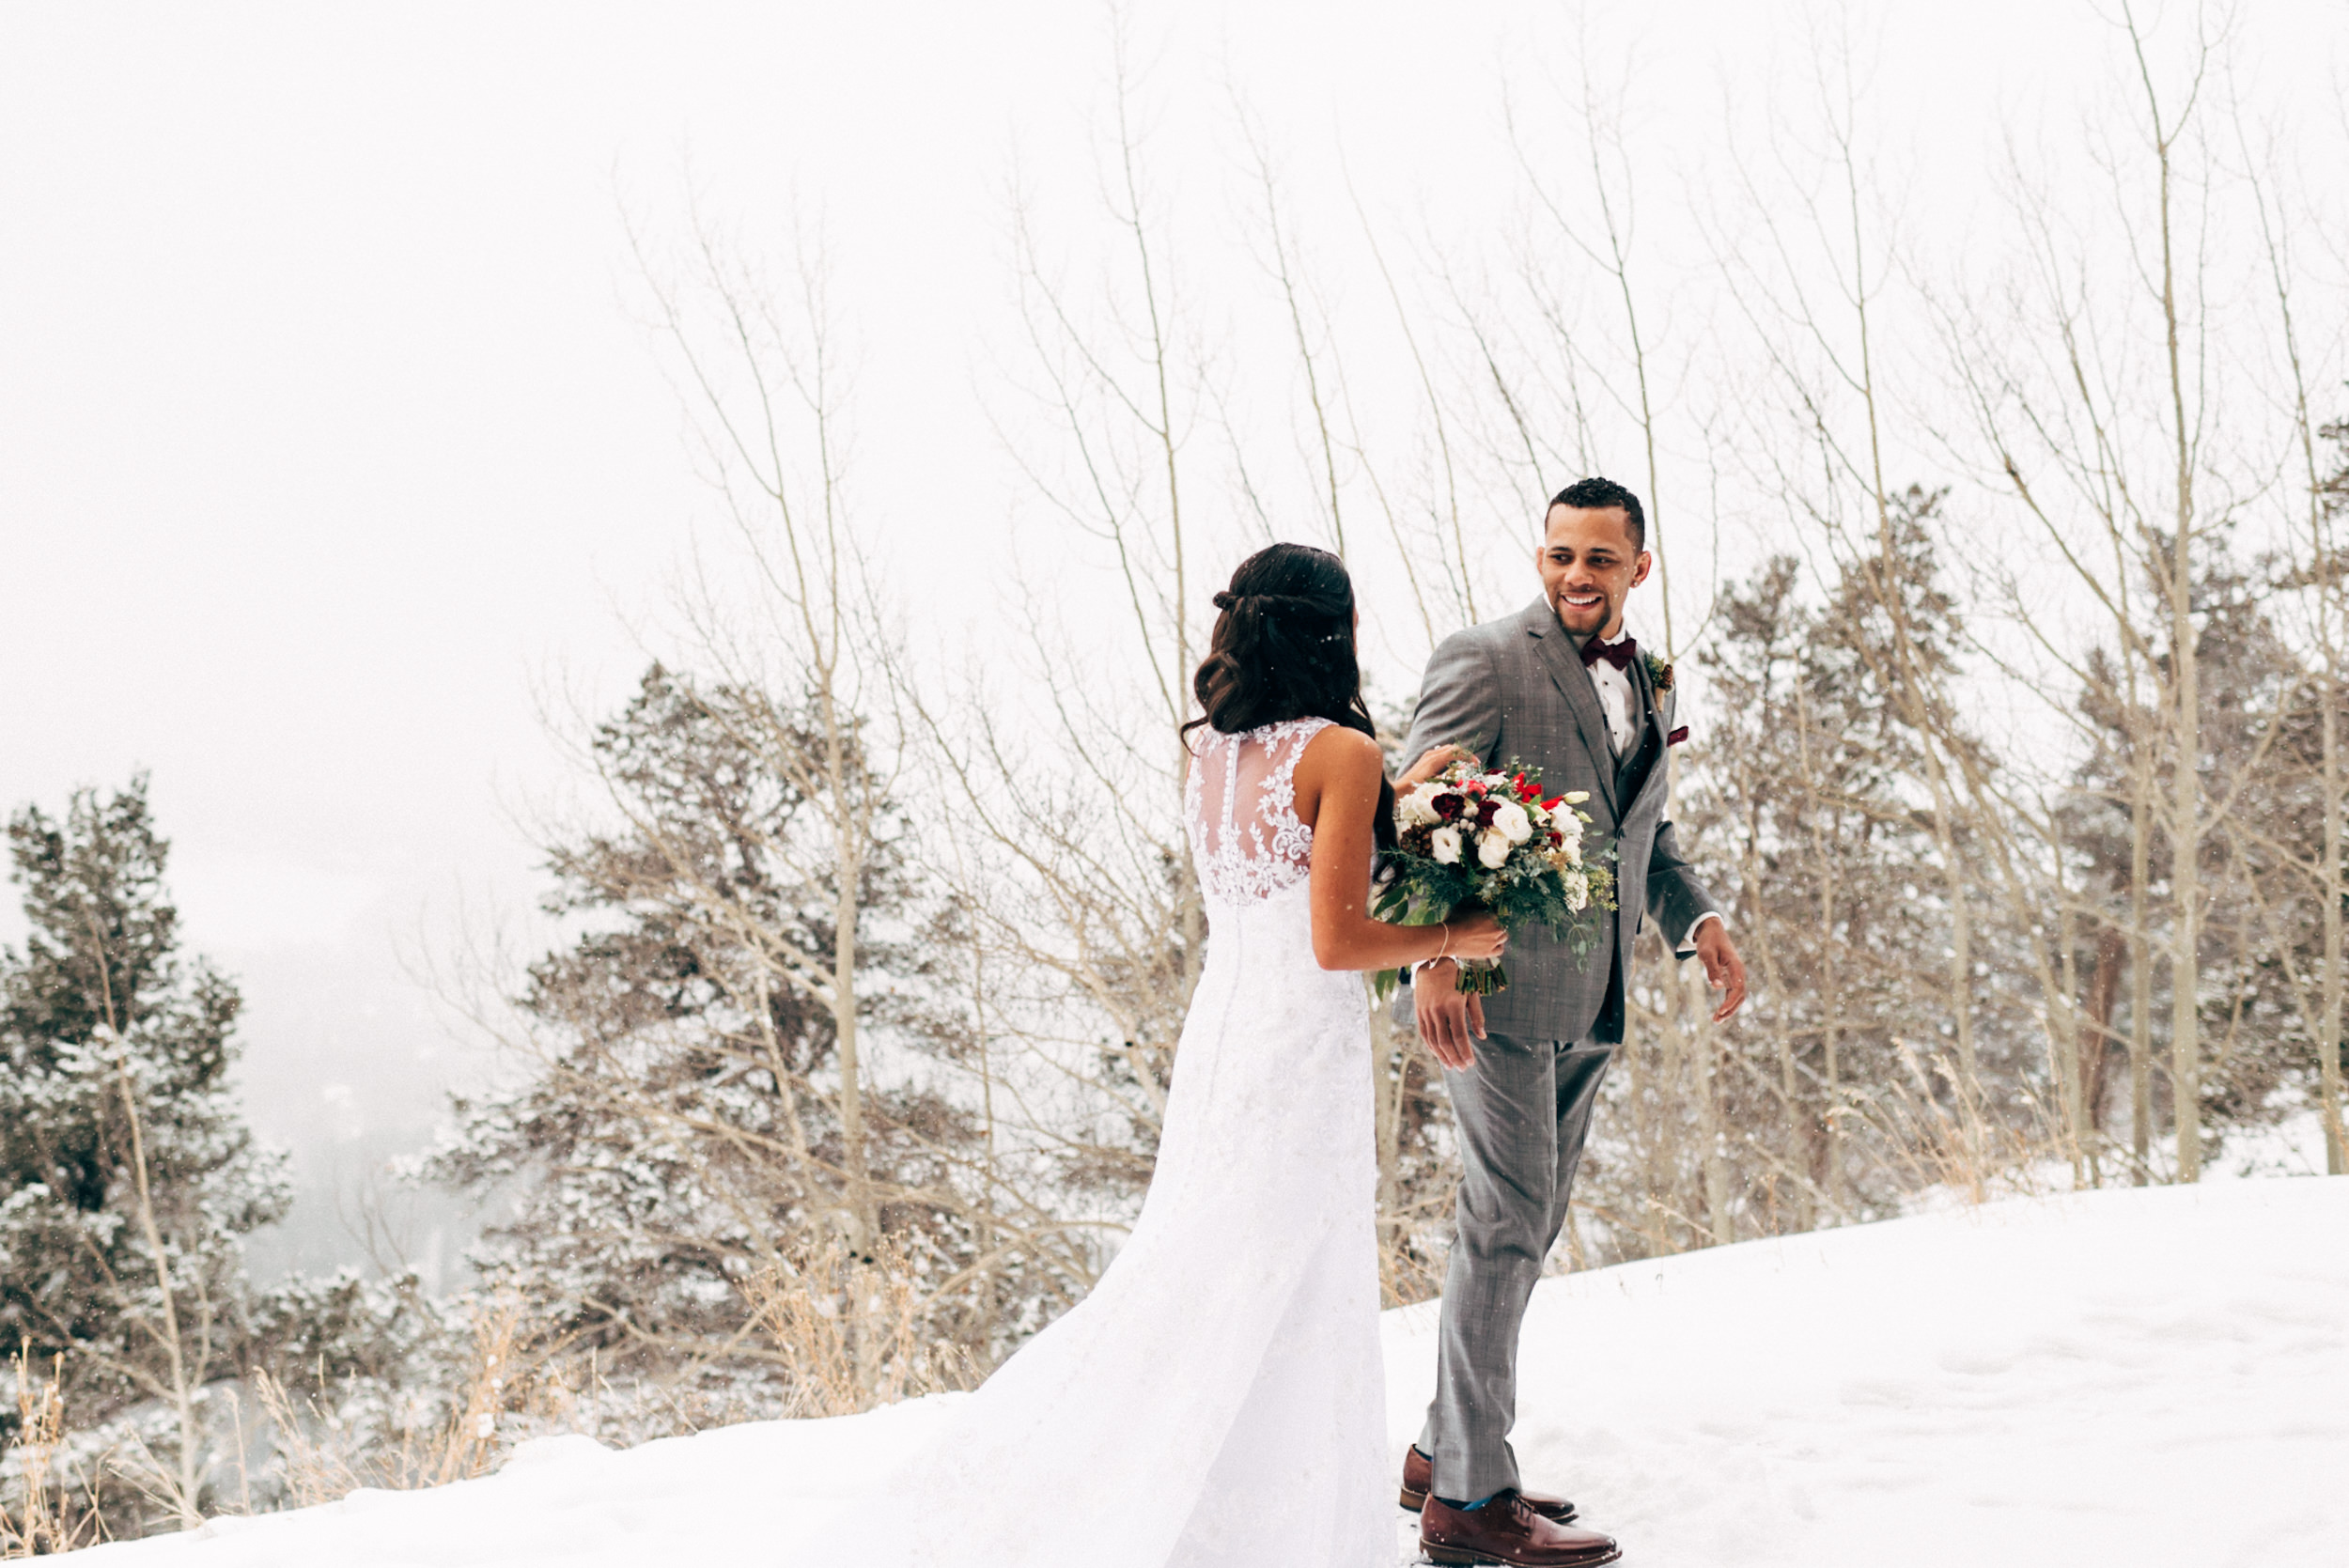 First look at winter wedding on Colorado mountain wedding. Colorado wedding photographer.